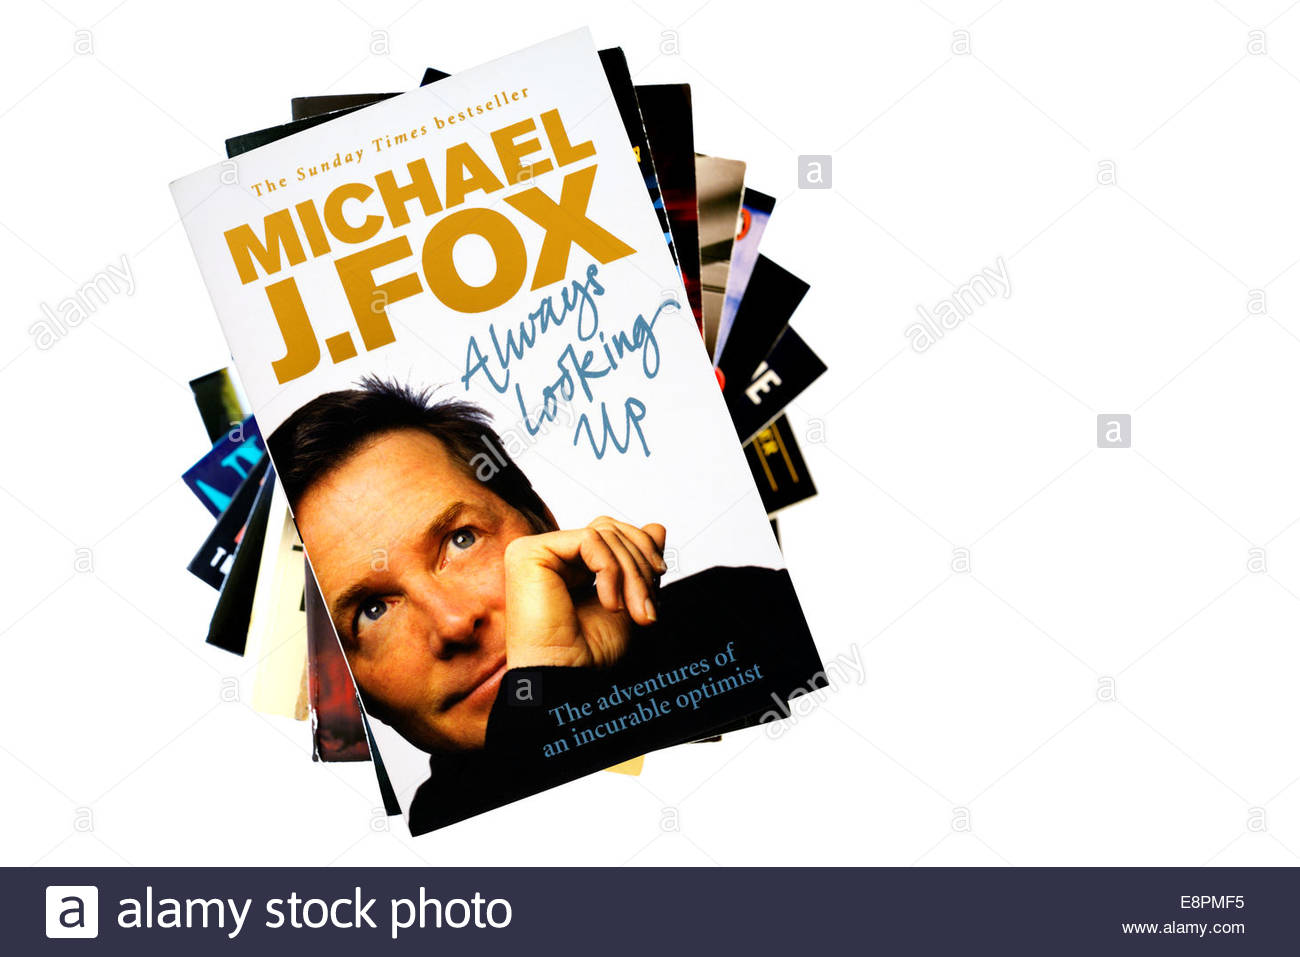 Michael J Fox autobiography Always Looking Up, stacked used books, England - Stock Image